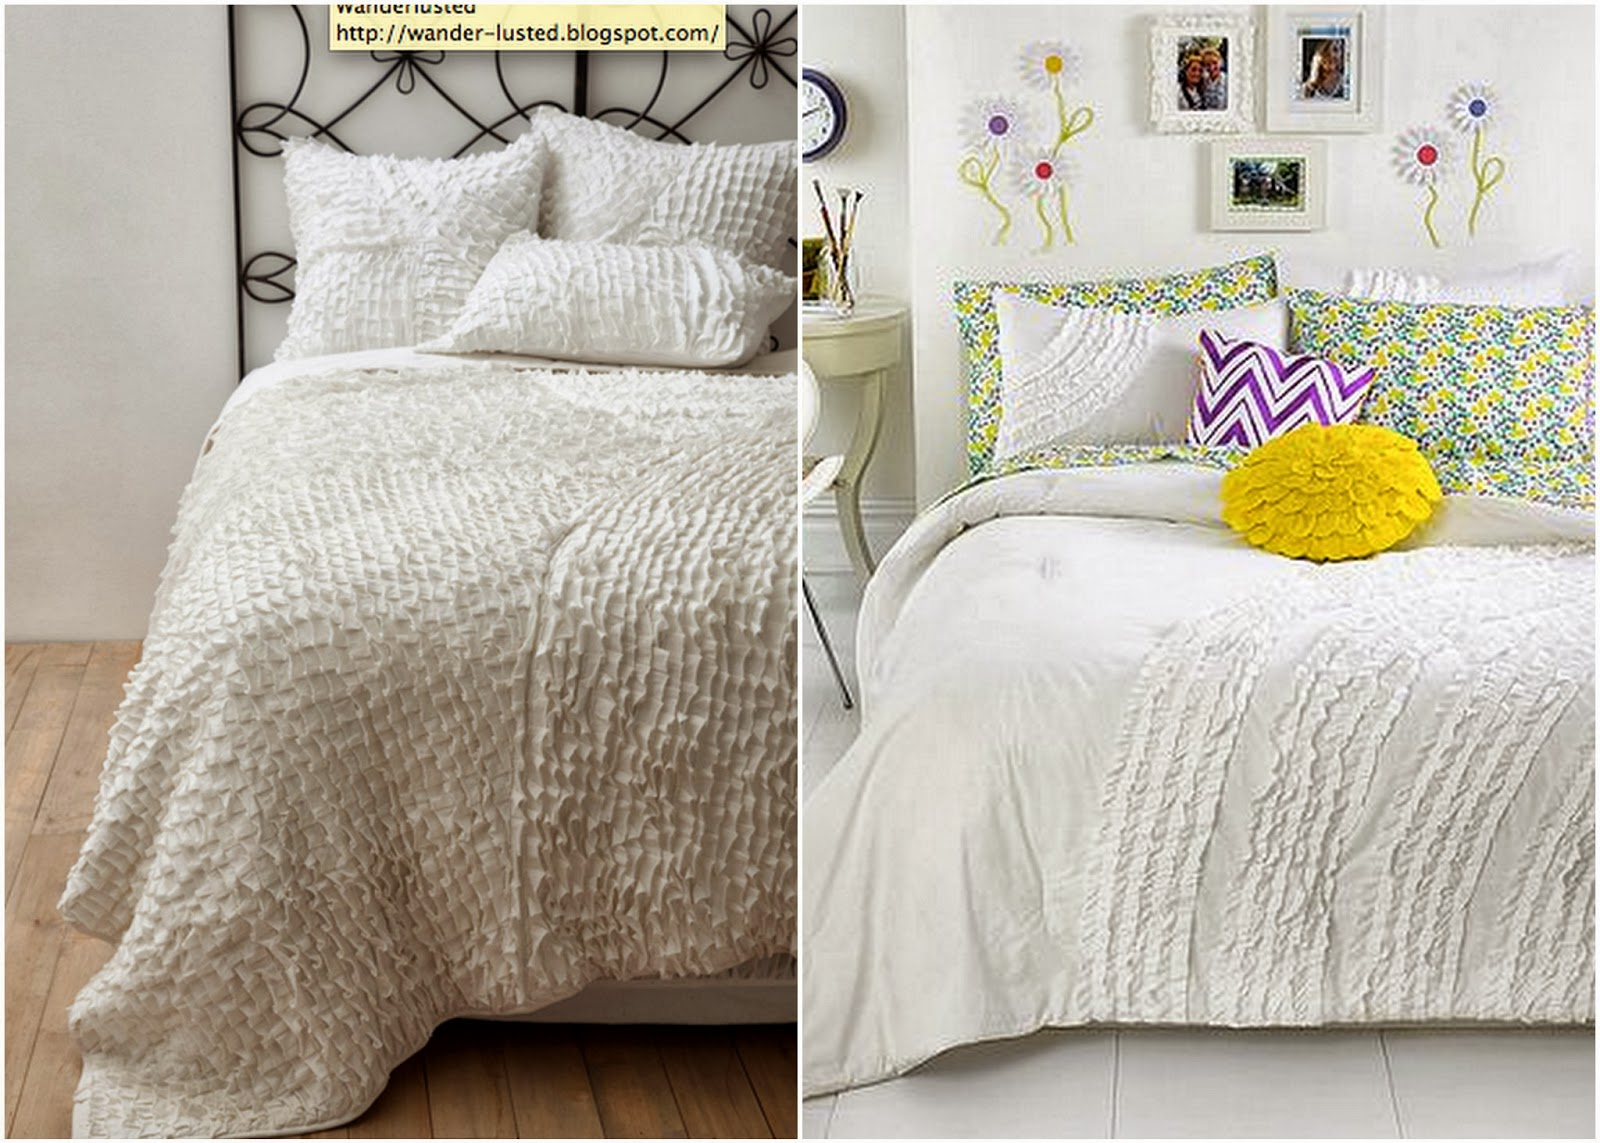 Anthropologie bedding - Anthropologie Willow Quilt For 368 King Or Ella Ruffle Comforter Set Queen Plus 2 Shams